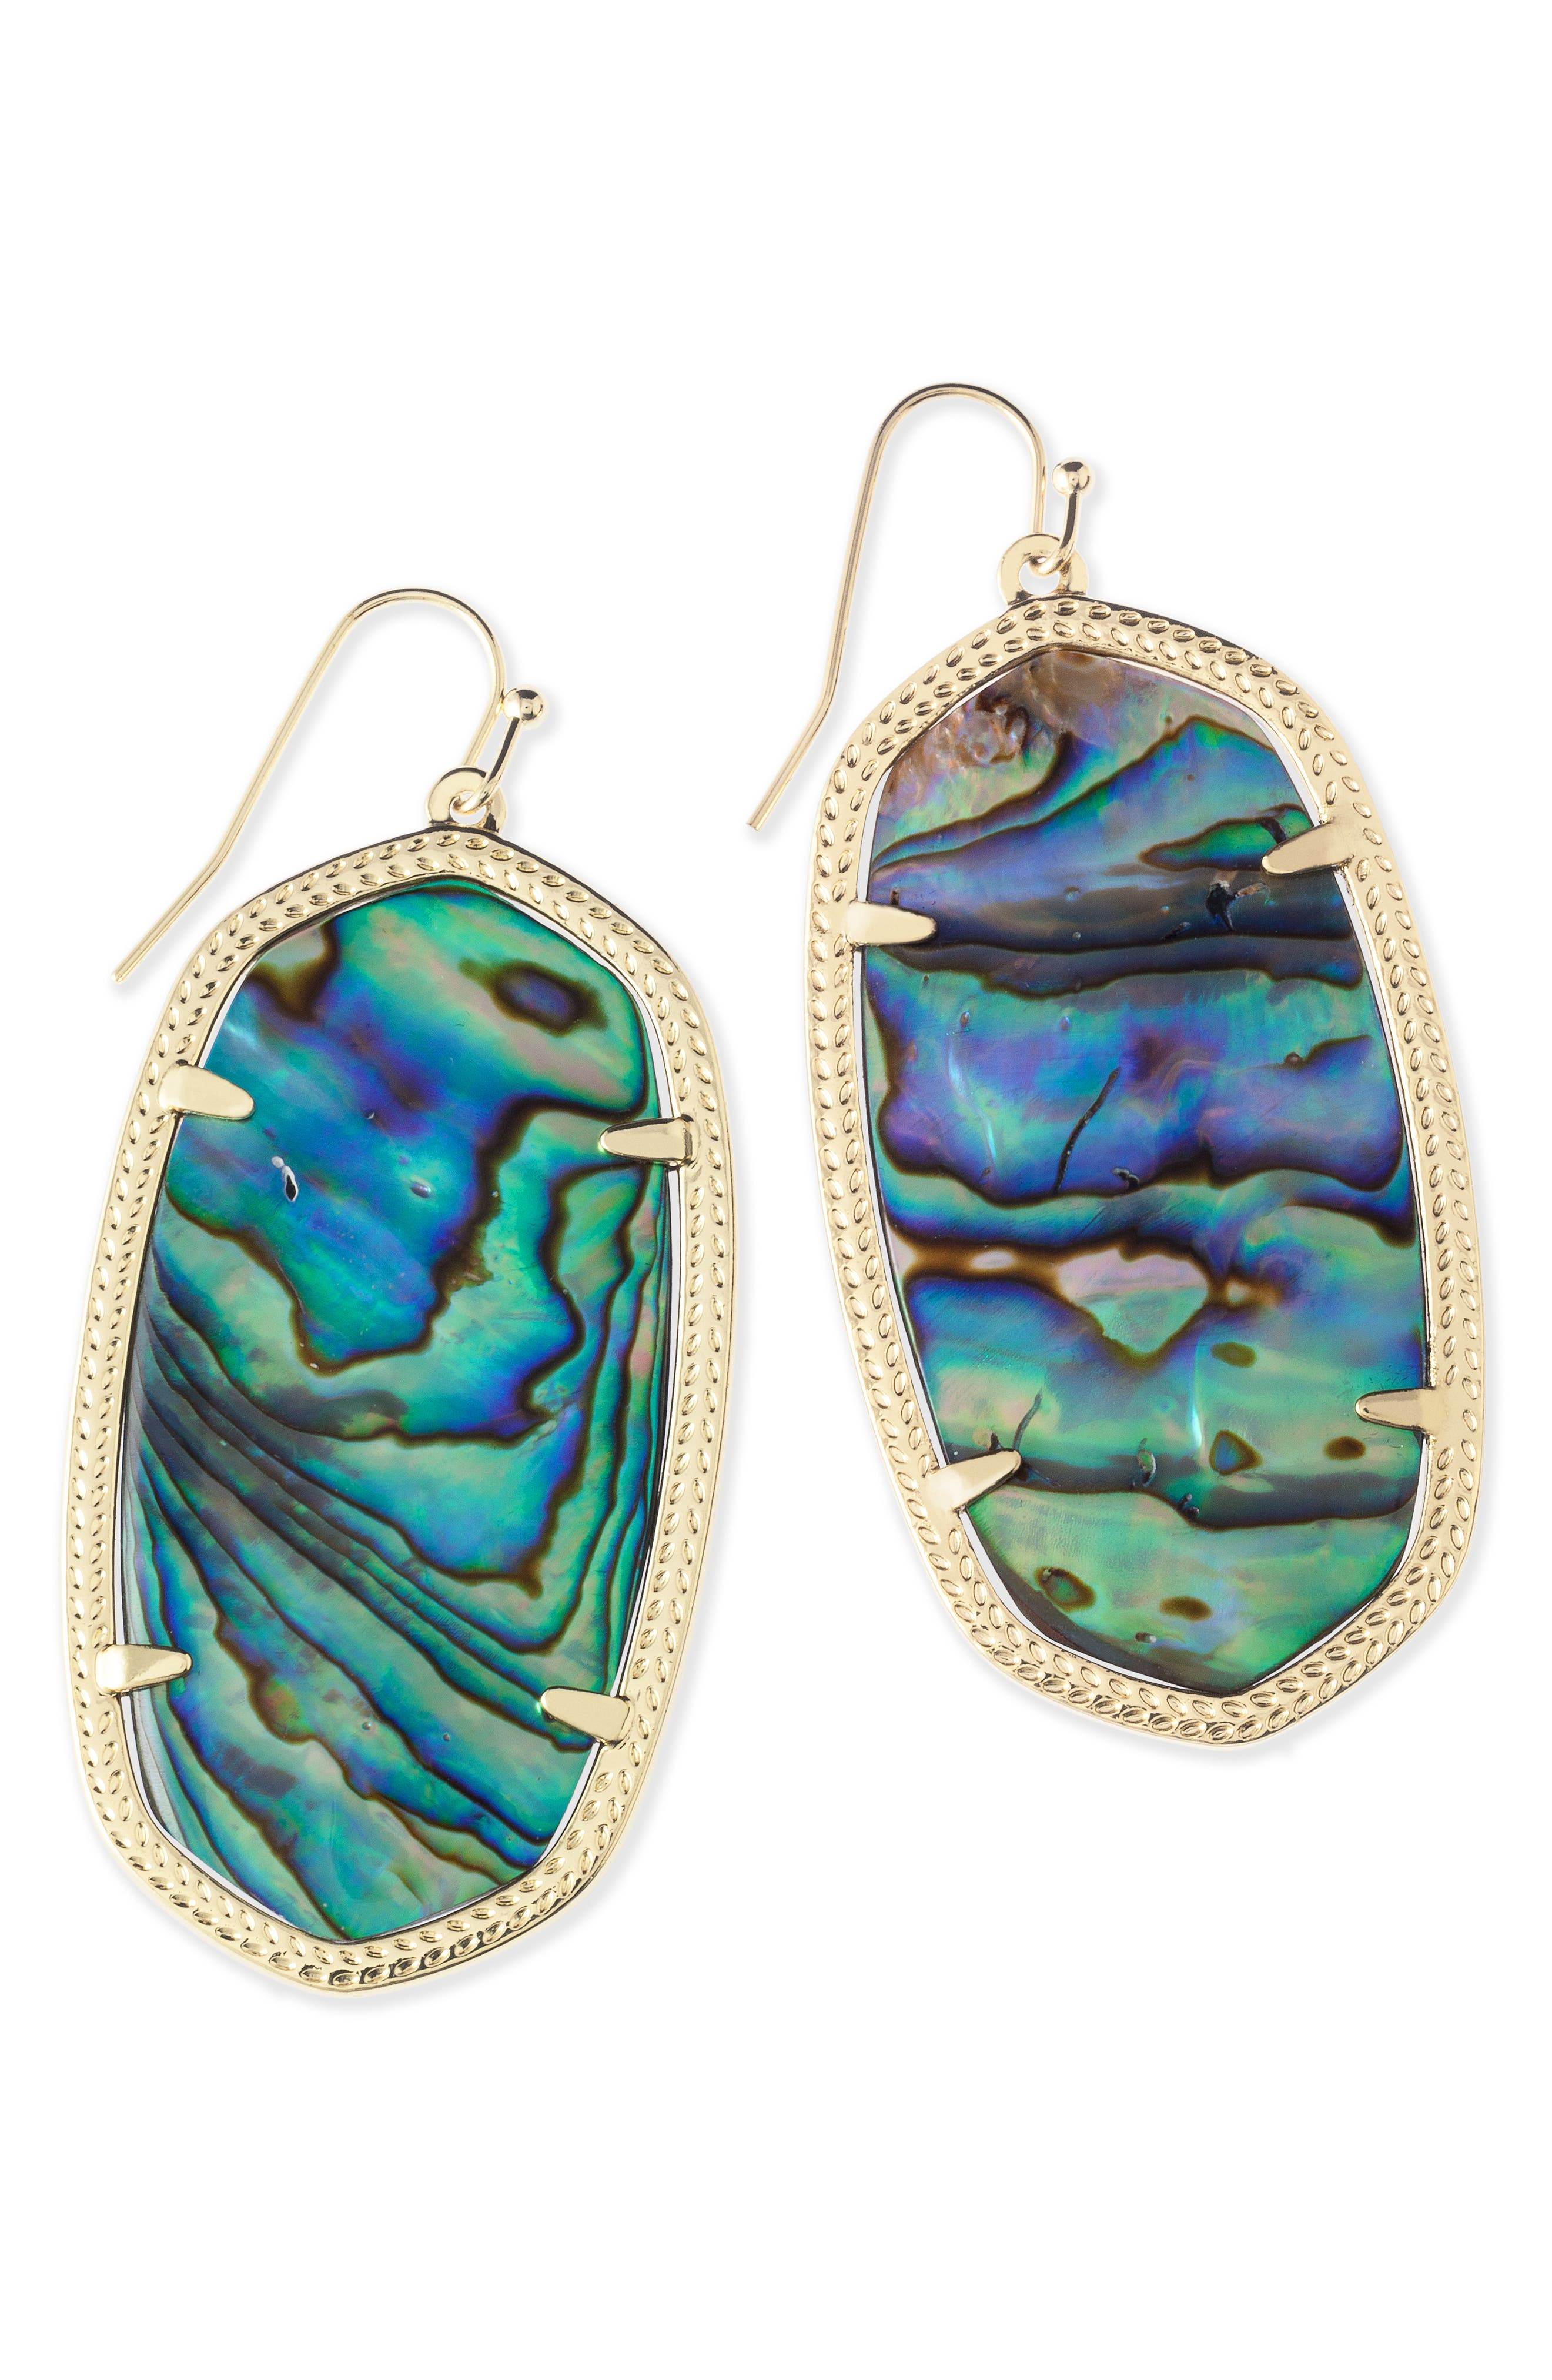 Danielle - Large Oval Statement Earrings,                             Alternate thumbnail 101, color,